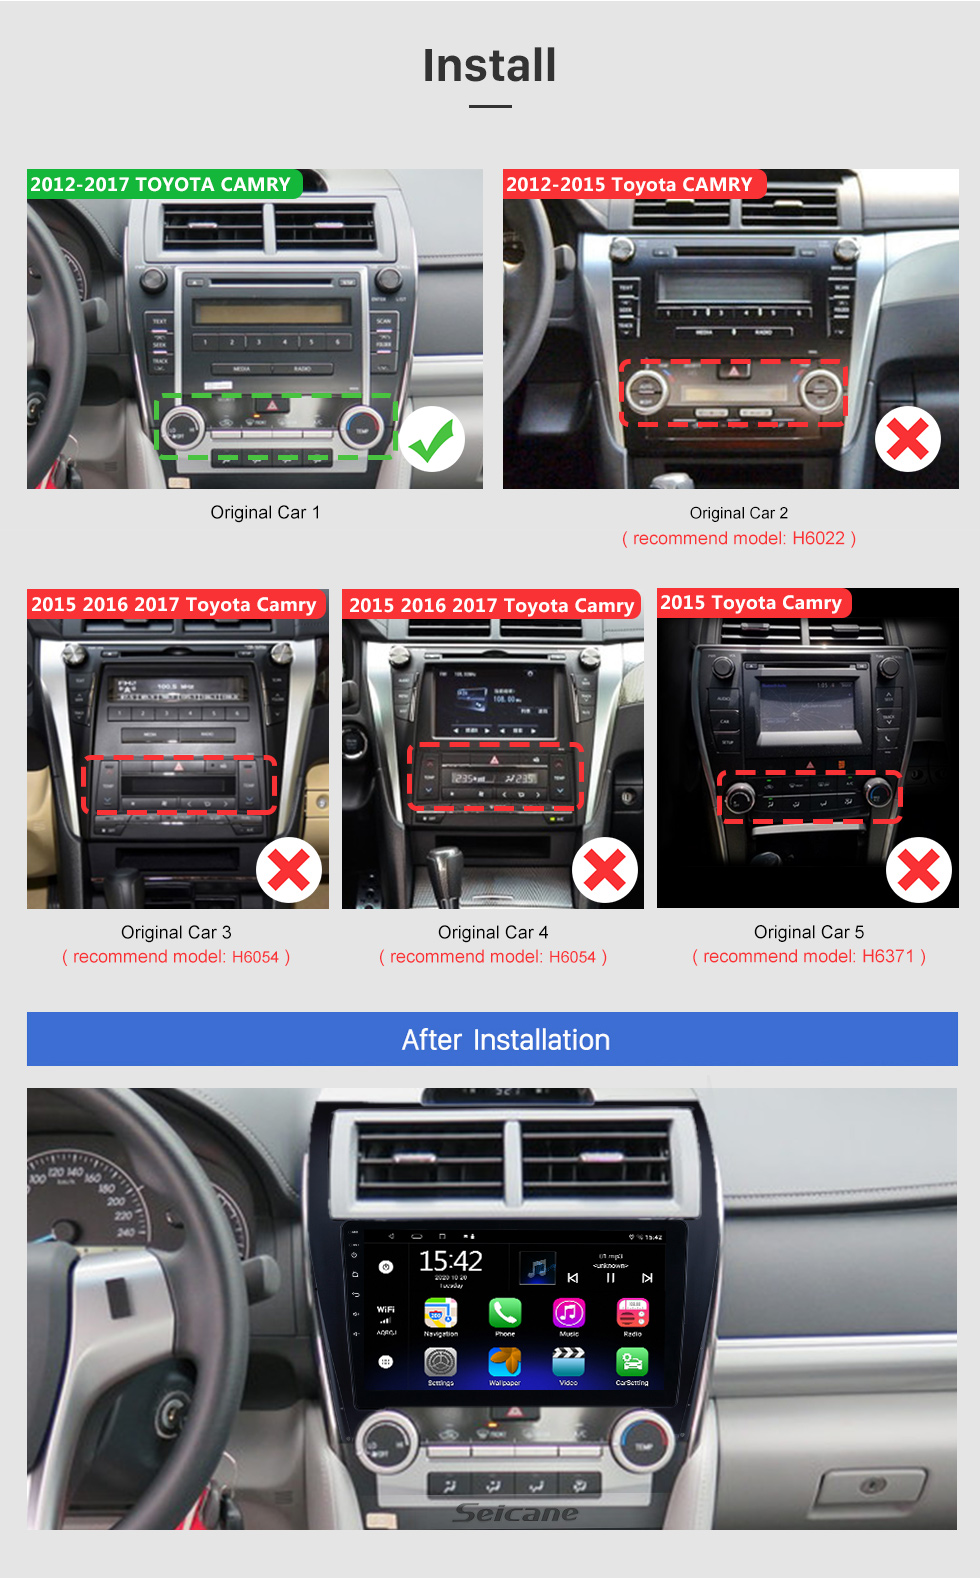 Seicane 10.1 Inch Android 10.0 HD Touchscreen Car Radio MP5 Player For 2012-2017 TOYOTA CAMRY GPS Navigation Bluetooth Phone Music WIFI Support OBD2 USB DAB+ Mirror Link Steering Wheel Control Backup Camera